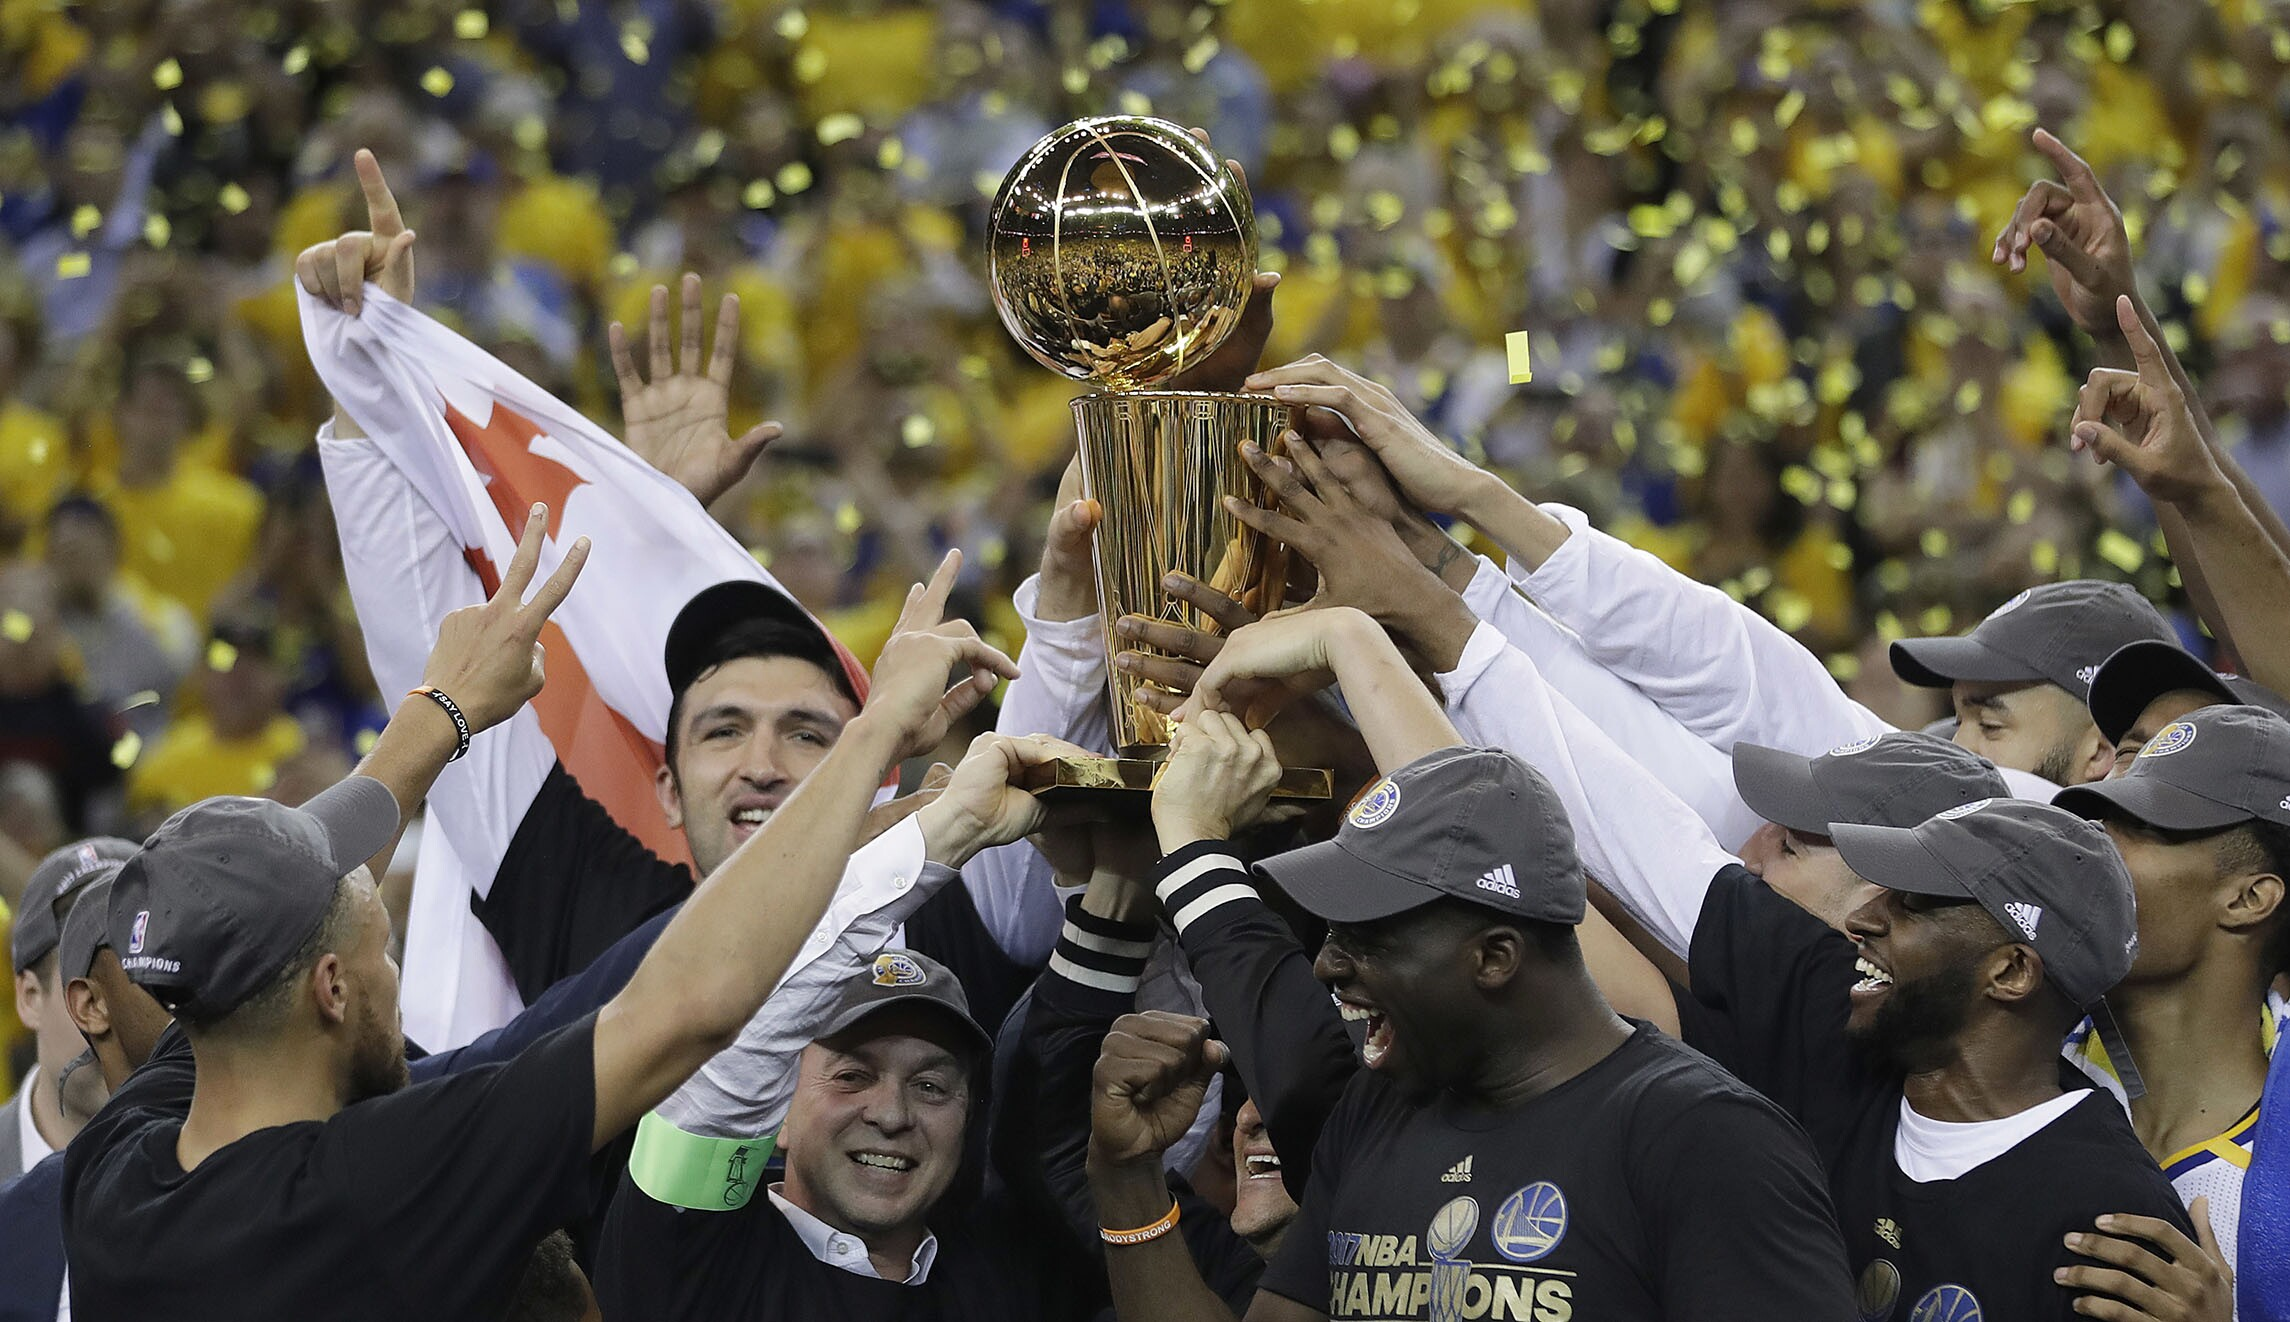 Golden State Warriors reject White House invite after Trump